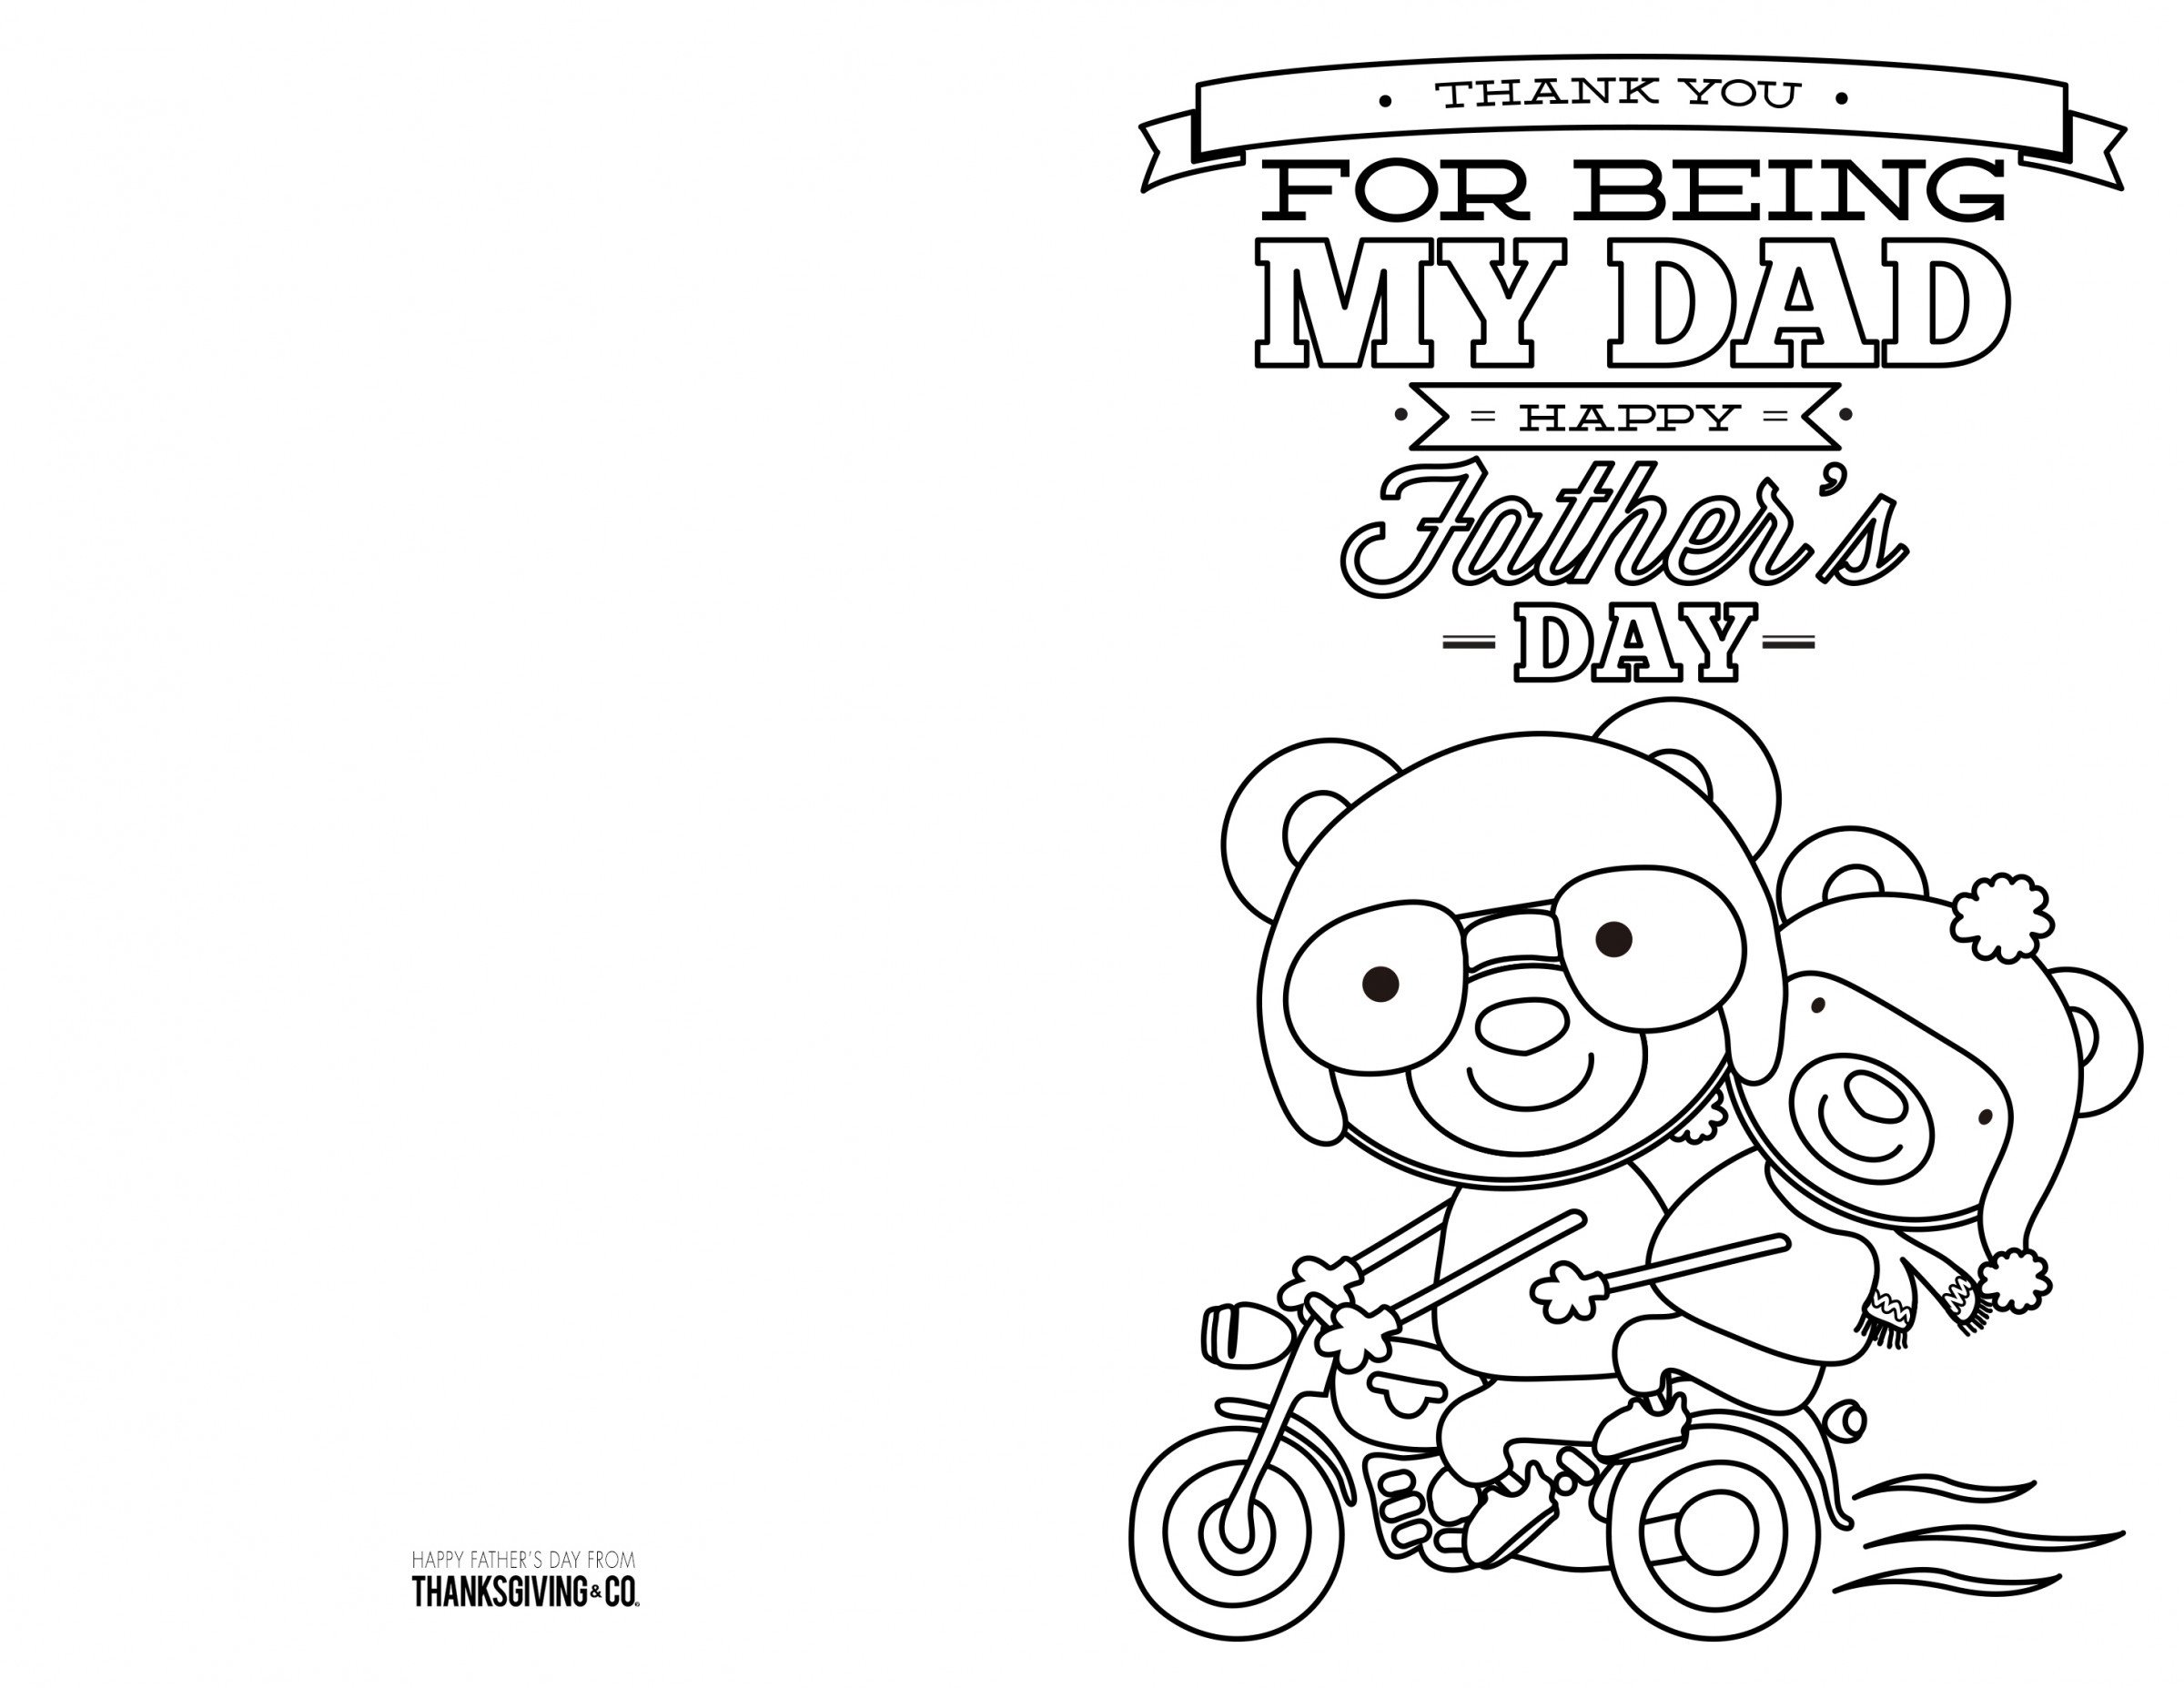 4 Free Printable Father's Day Cards To Color - Thanksgiving - Free Printable Cards To Color